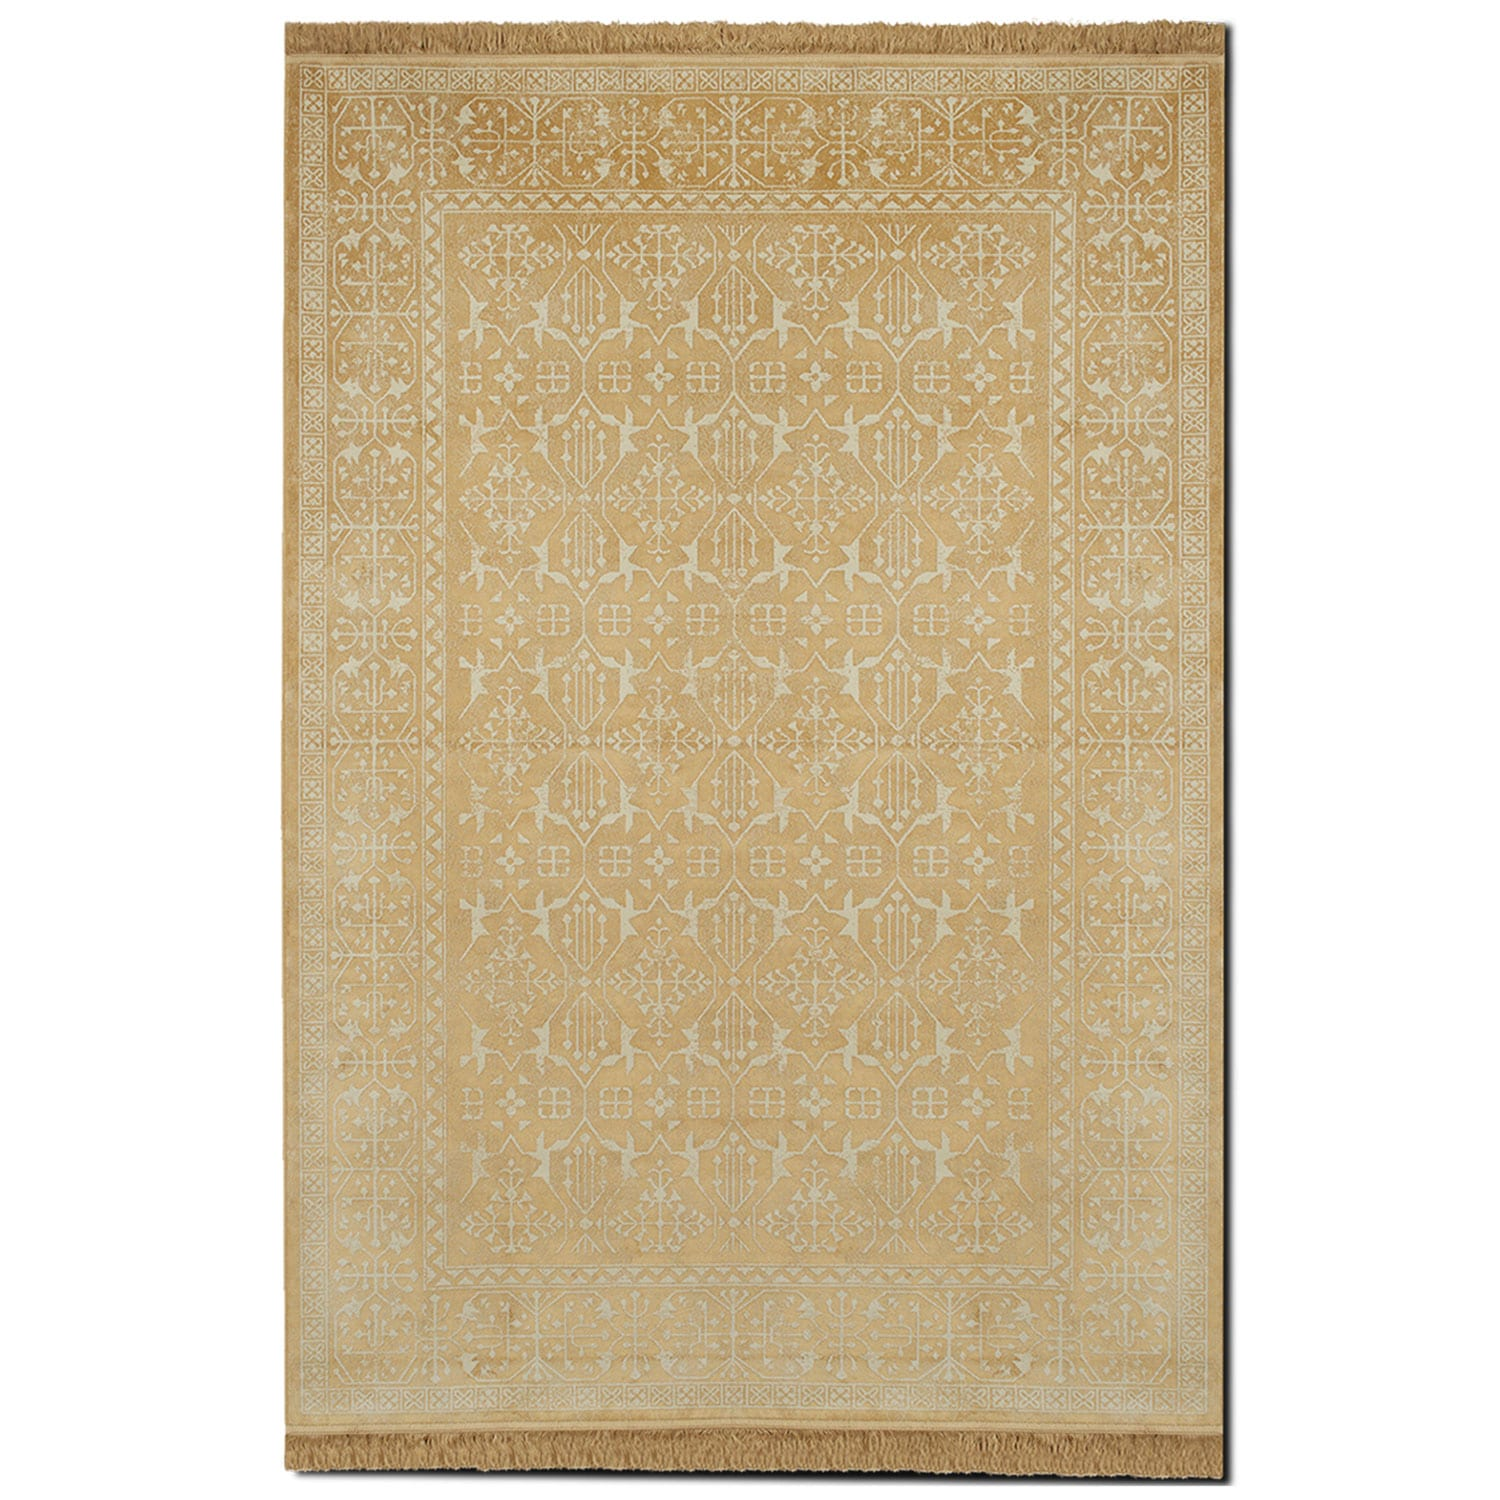 Rugs - Sonoma 8' x 10' Area Rug - Yellow and White